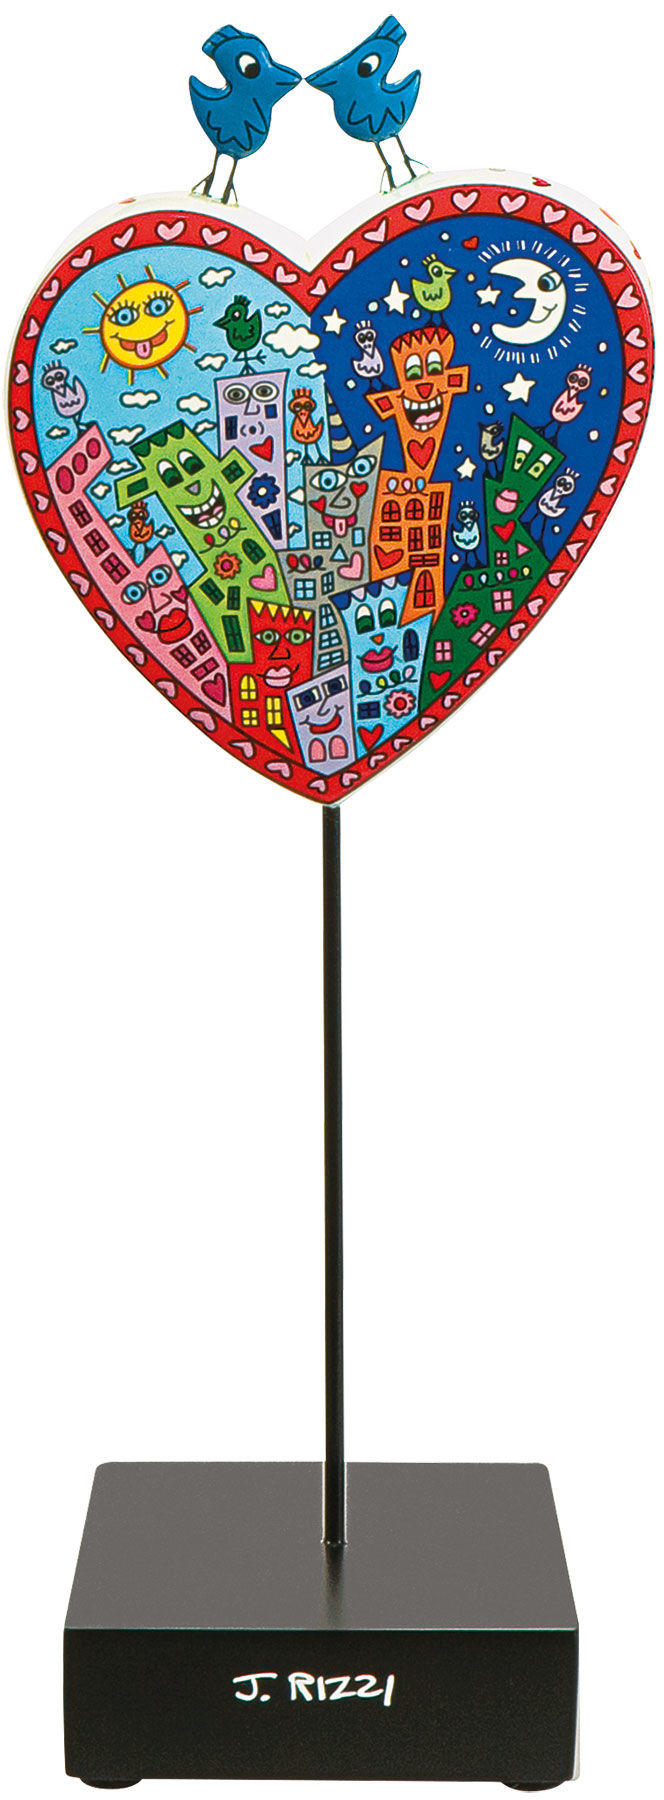 "James Rizzi: Porzellanherz ""Love in the heart of the city"" - Bild 1"